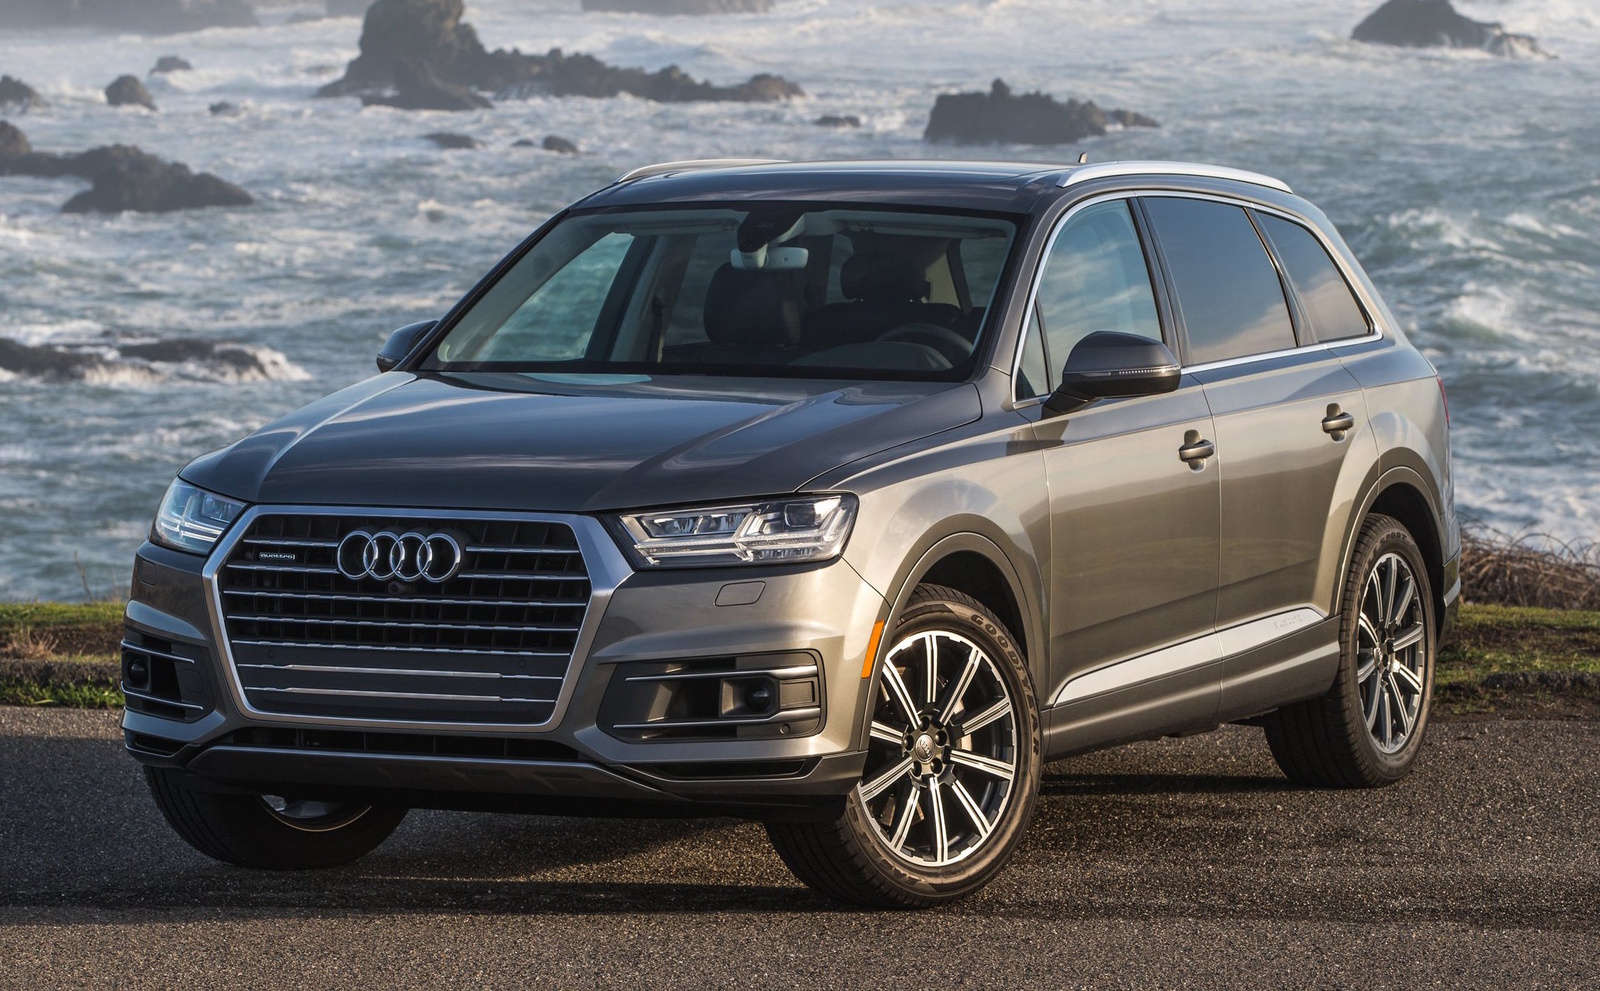 2017 Audi Q7 for Sale in your area - CarGurus